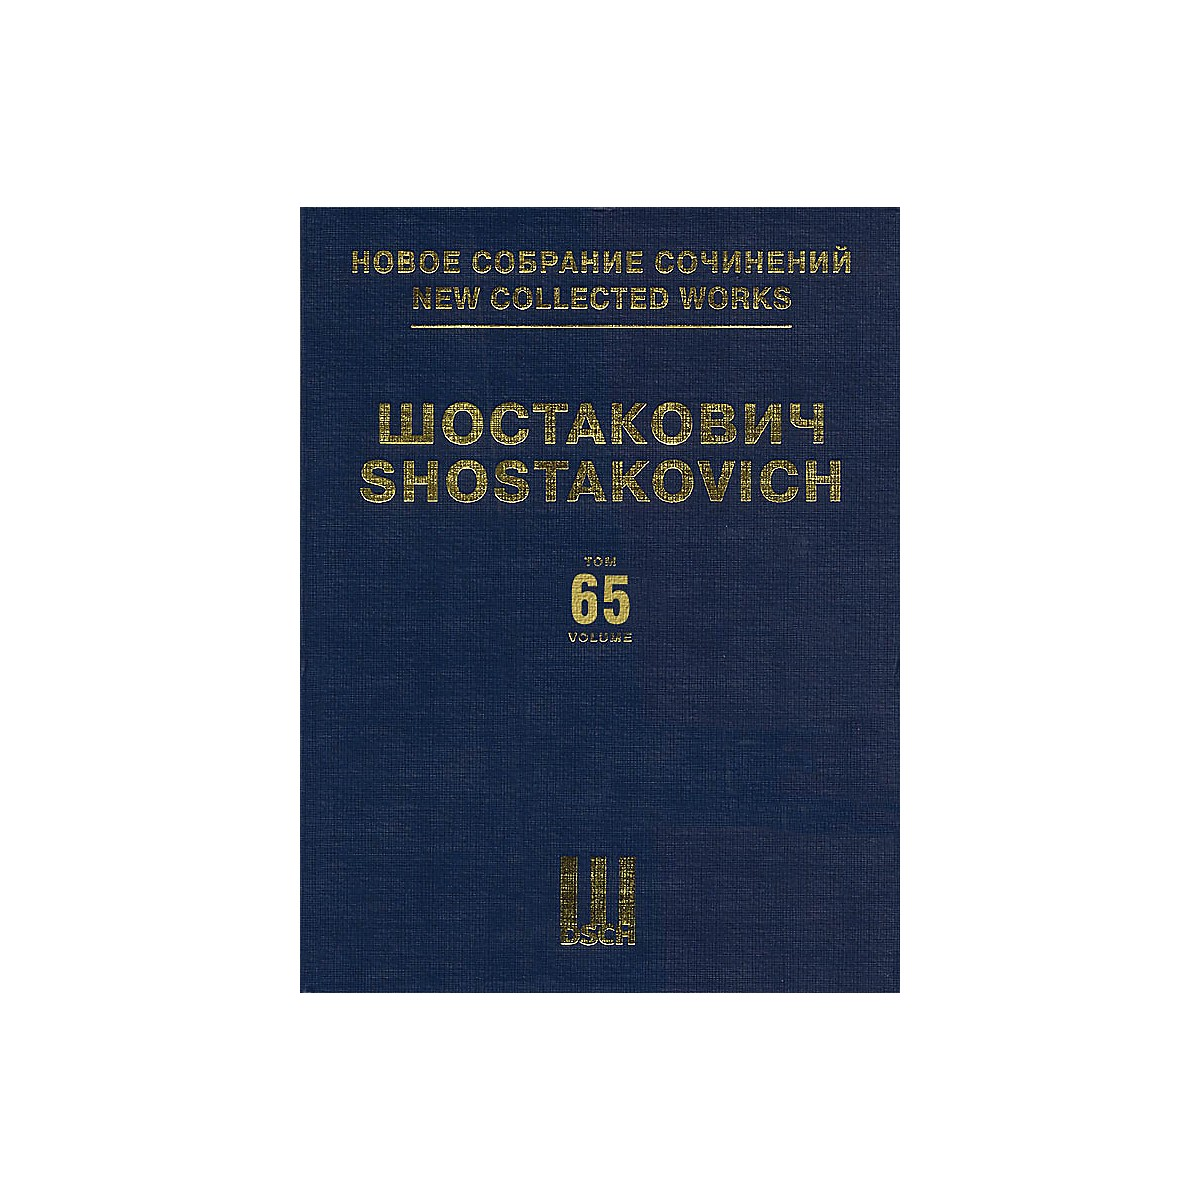 DSCH The Limpid Stream, Op. 39 (New Collected Works of Dmitri Shostakovich - Volume 65) DSCH Series